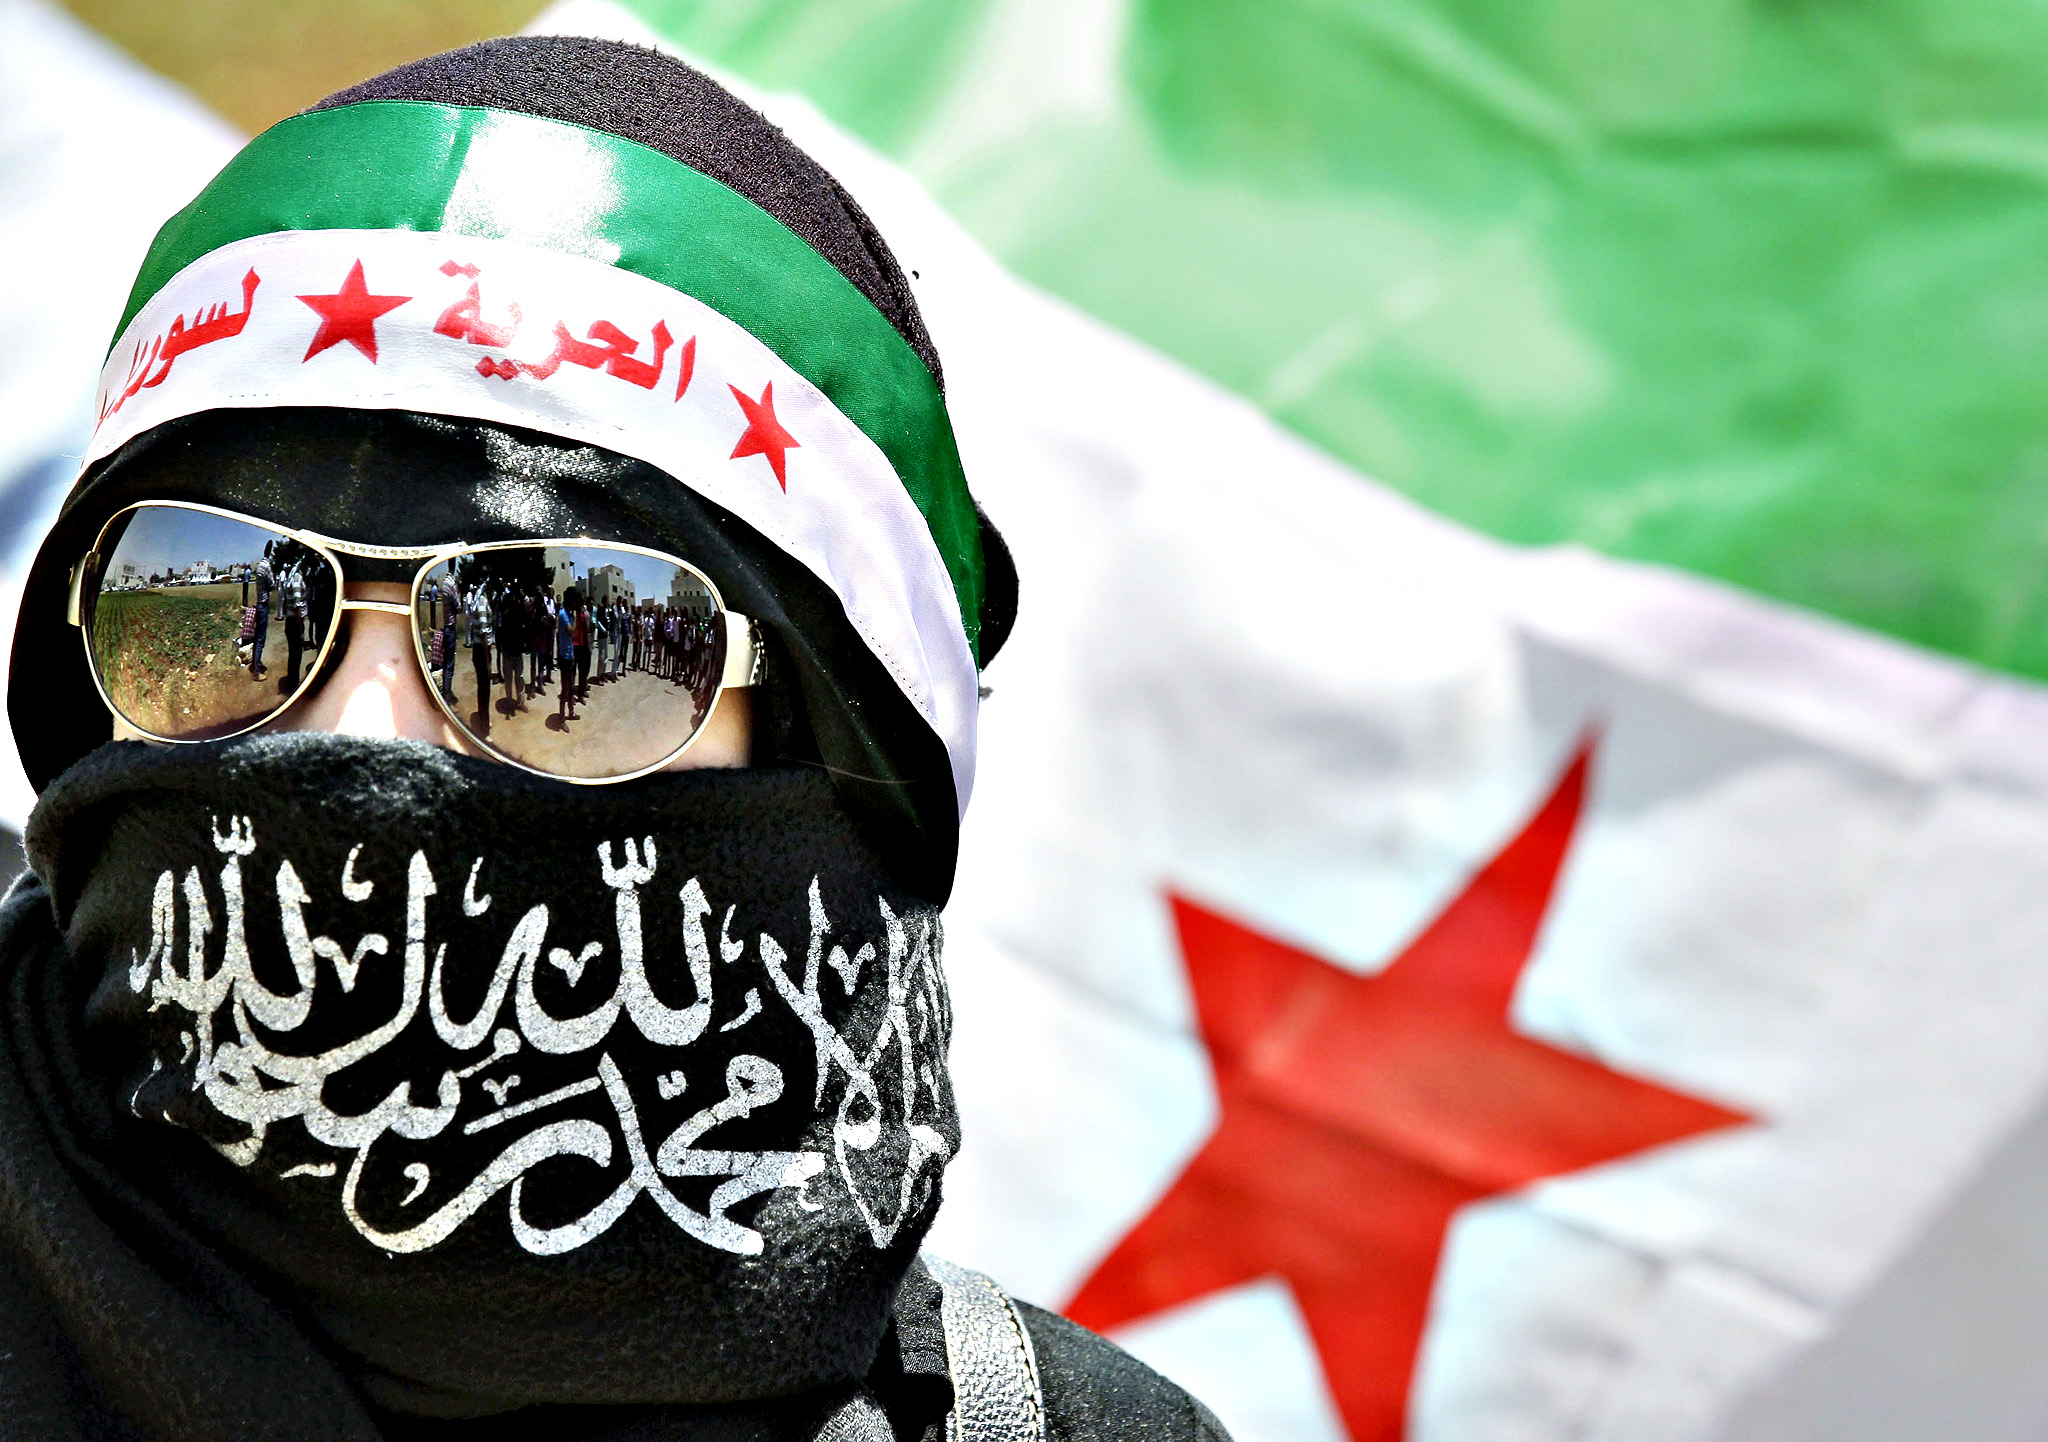 A Syrian living in Jordan takes part in a protest against the Syrian presidential elections, near the Syrian embassy in Amman on May 28, 2014. Polls open in Syrian embassies for refugees who fled their homeland through recognised checkpoints, in a controversial election expected to return President Bashar al-Assad to office despite three years of civil war.